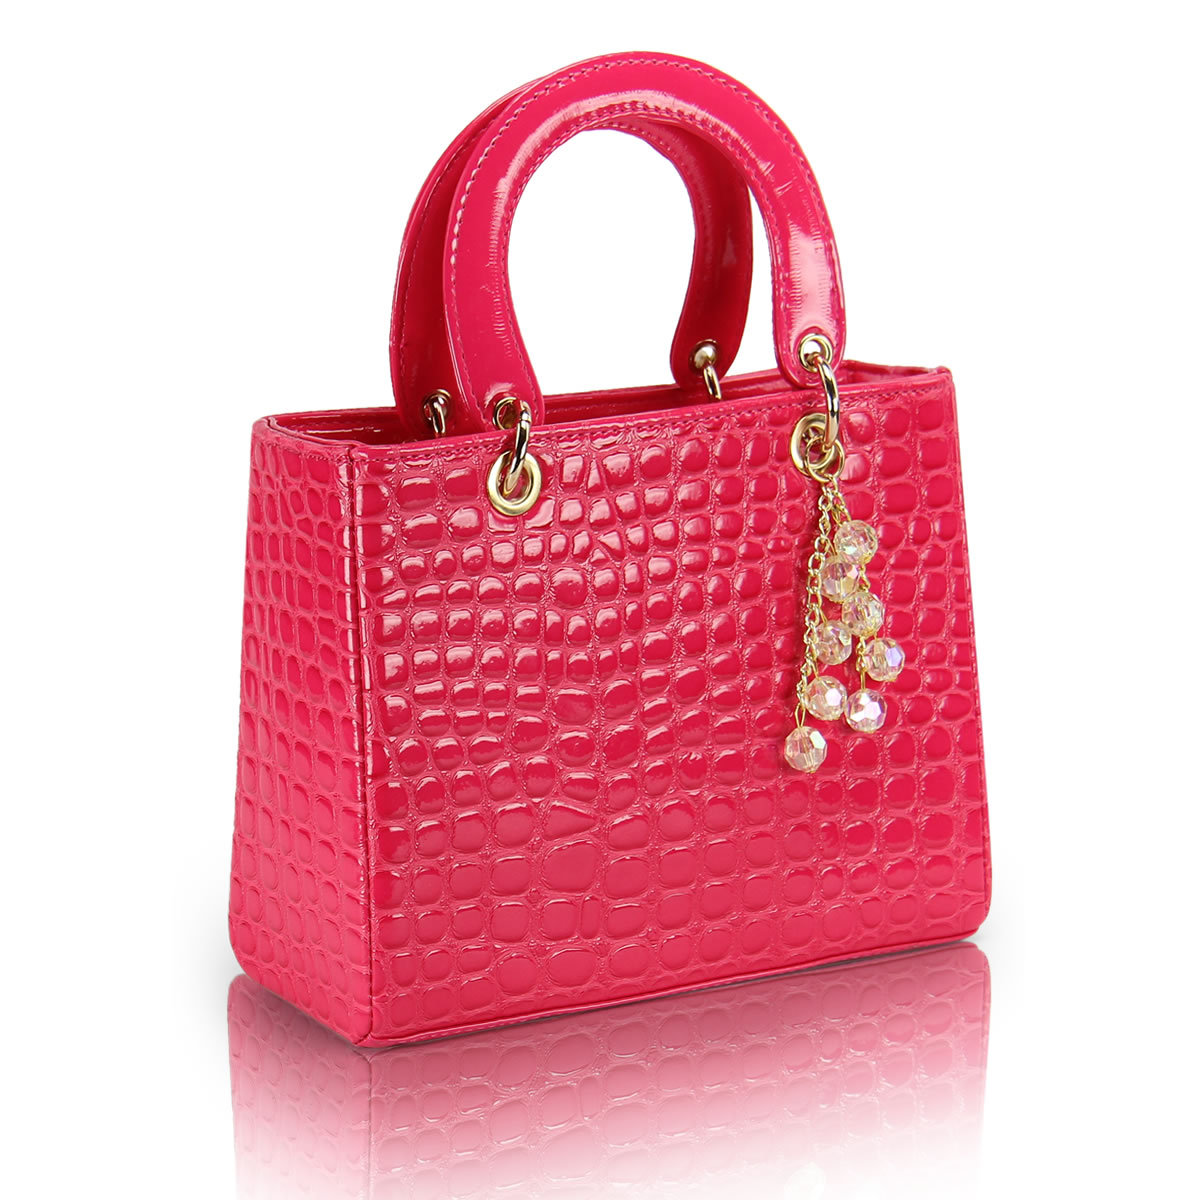 2013 spring women's handbag bag japanned leather shiny box plaid handbag small bag(China (Mainland))